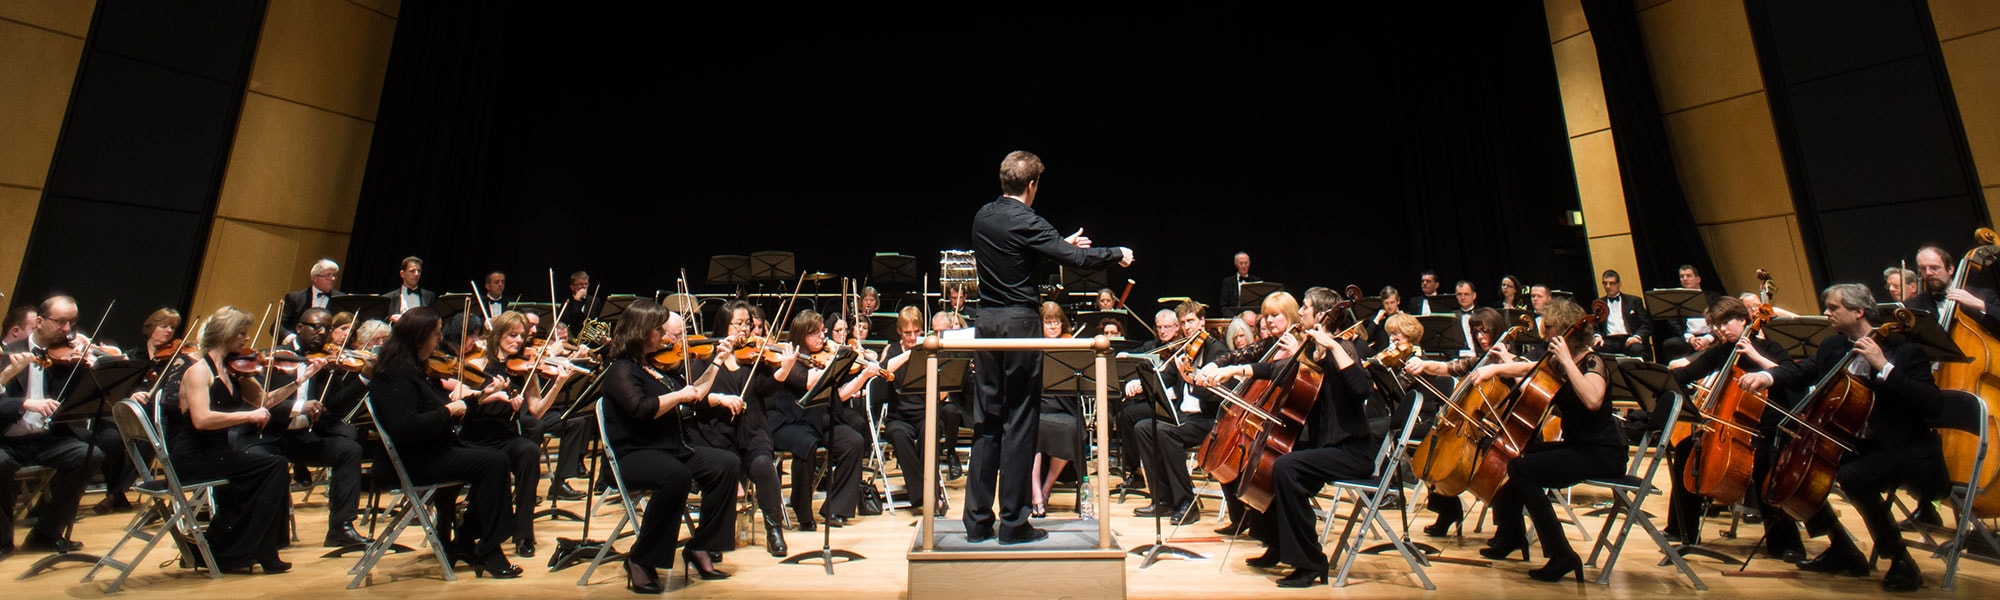 de Havilland Philharmonic Orchestra performing at The Weston Auditorium